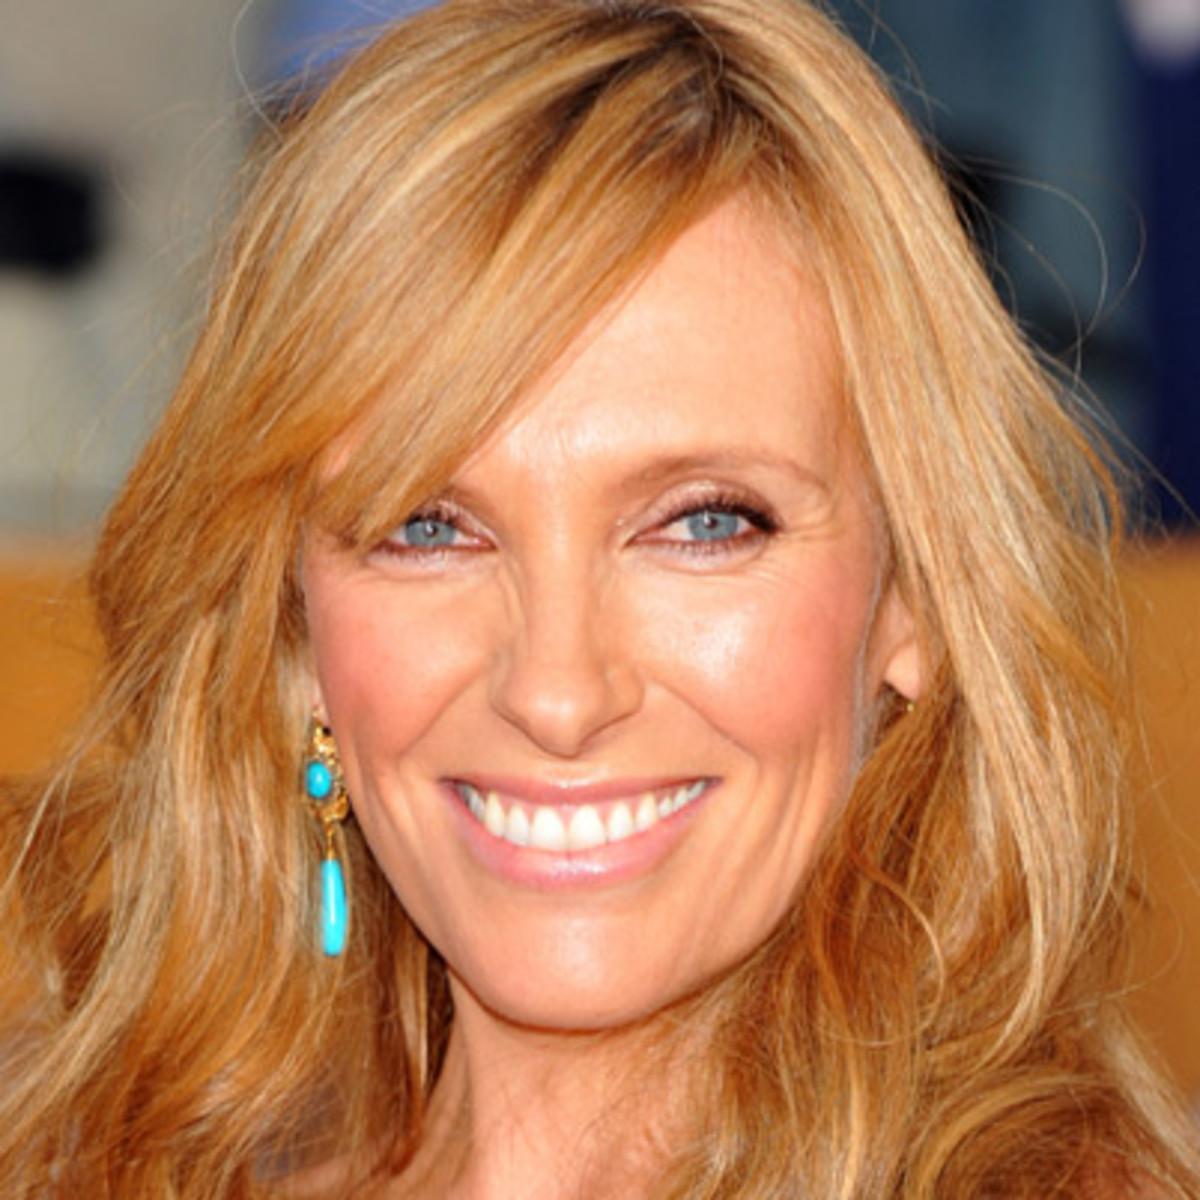 Toni Collette nudes (22 foto and video), Topless, Is a cute, Instagram, butt 2006